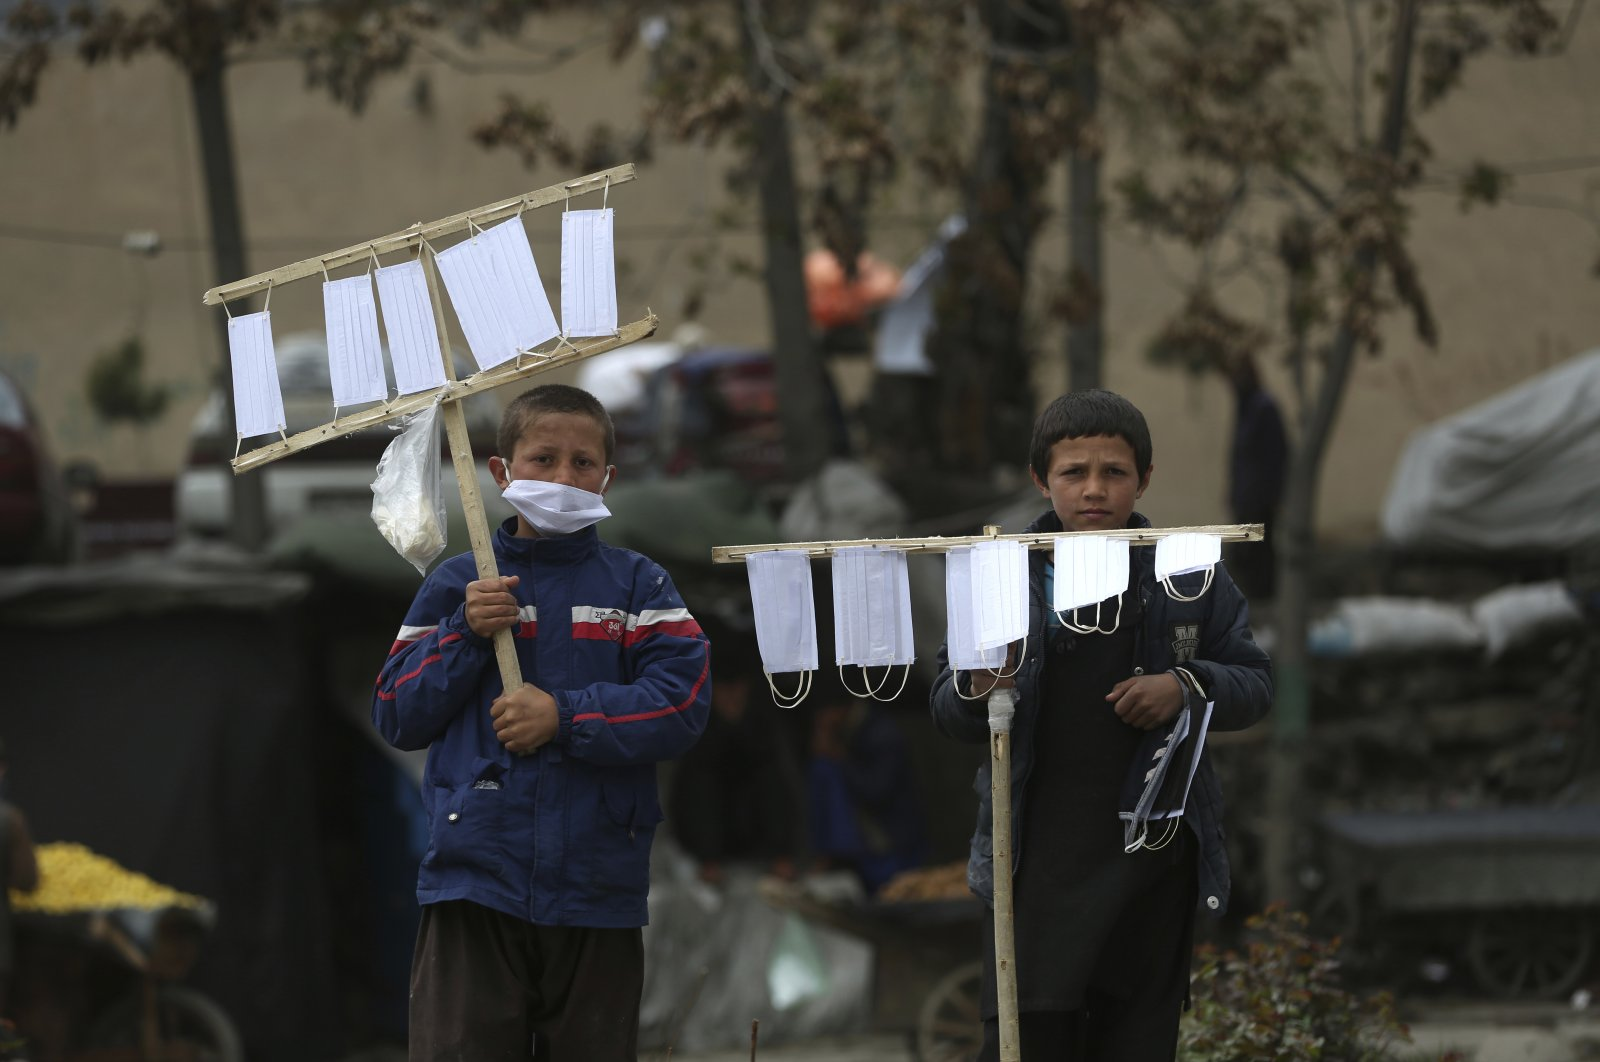 Street vendors selling protective masks to help curb the spread of the coronavirus wait for customers in Kabul, Afghanistan, Tuesday, April 14, 2020. (AP)